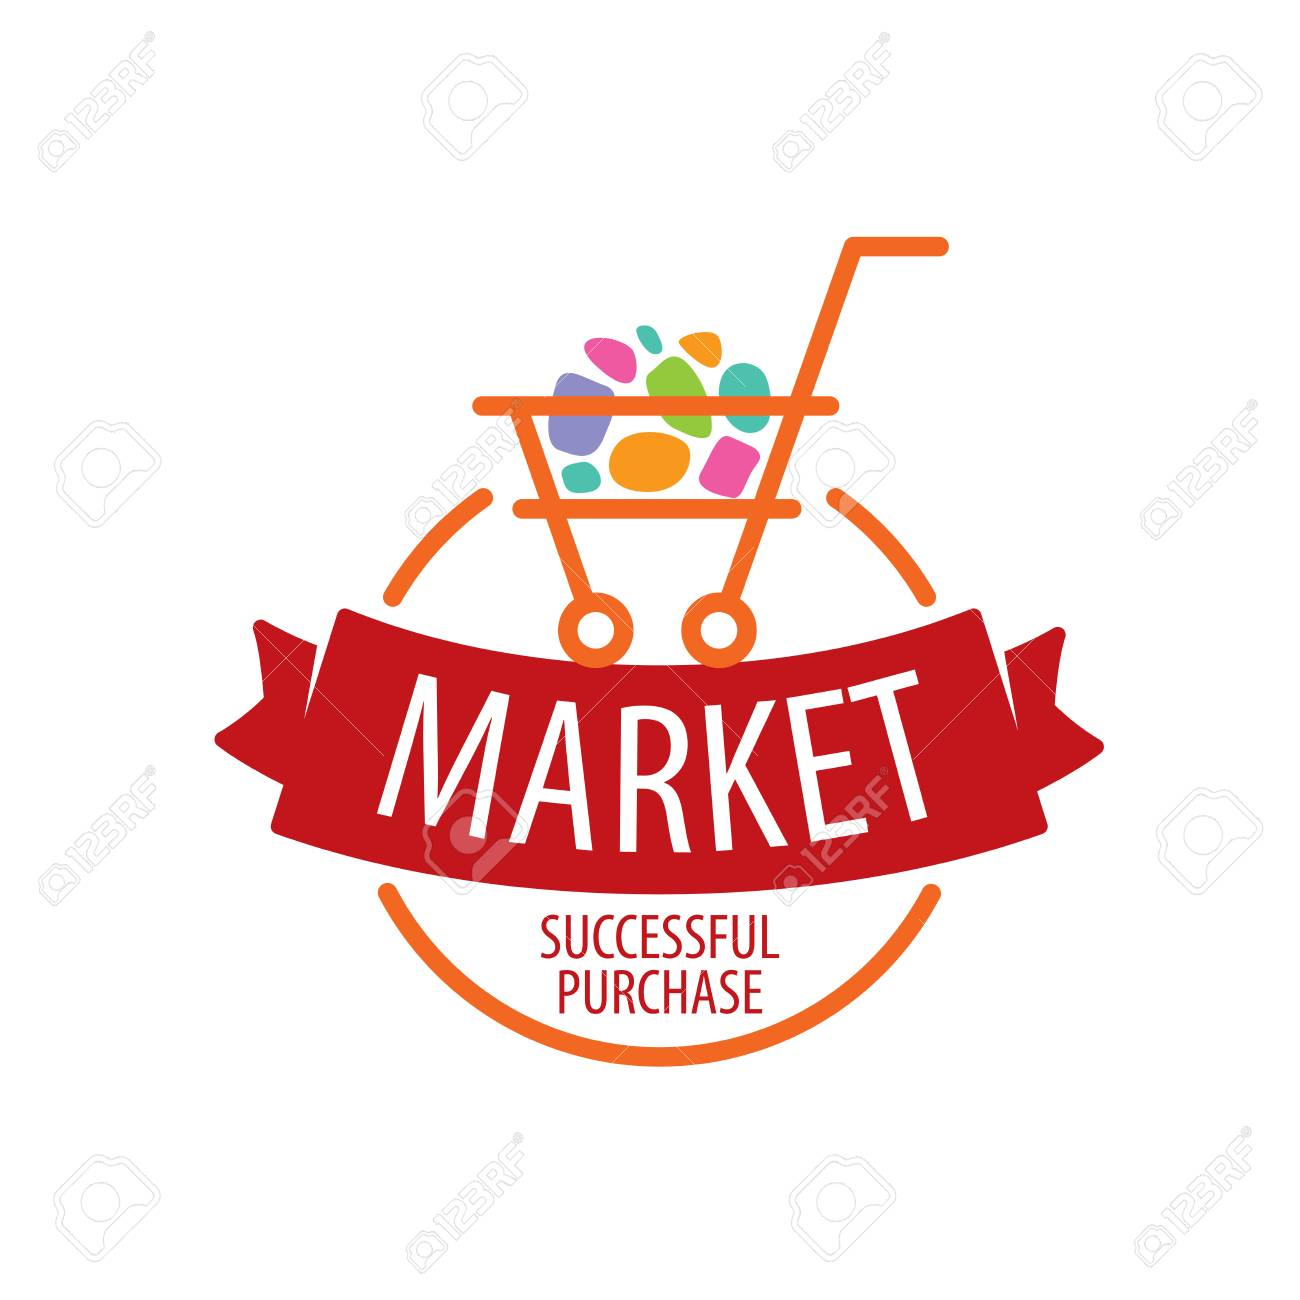 https://previews.123rf.com/images/butenkow/butenkow1612/butenkow161202599/67426237-round-logo-shopping-cart-vector-illustration-of-icon.jpg